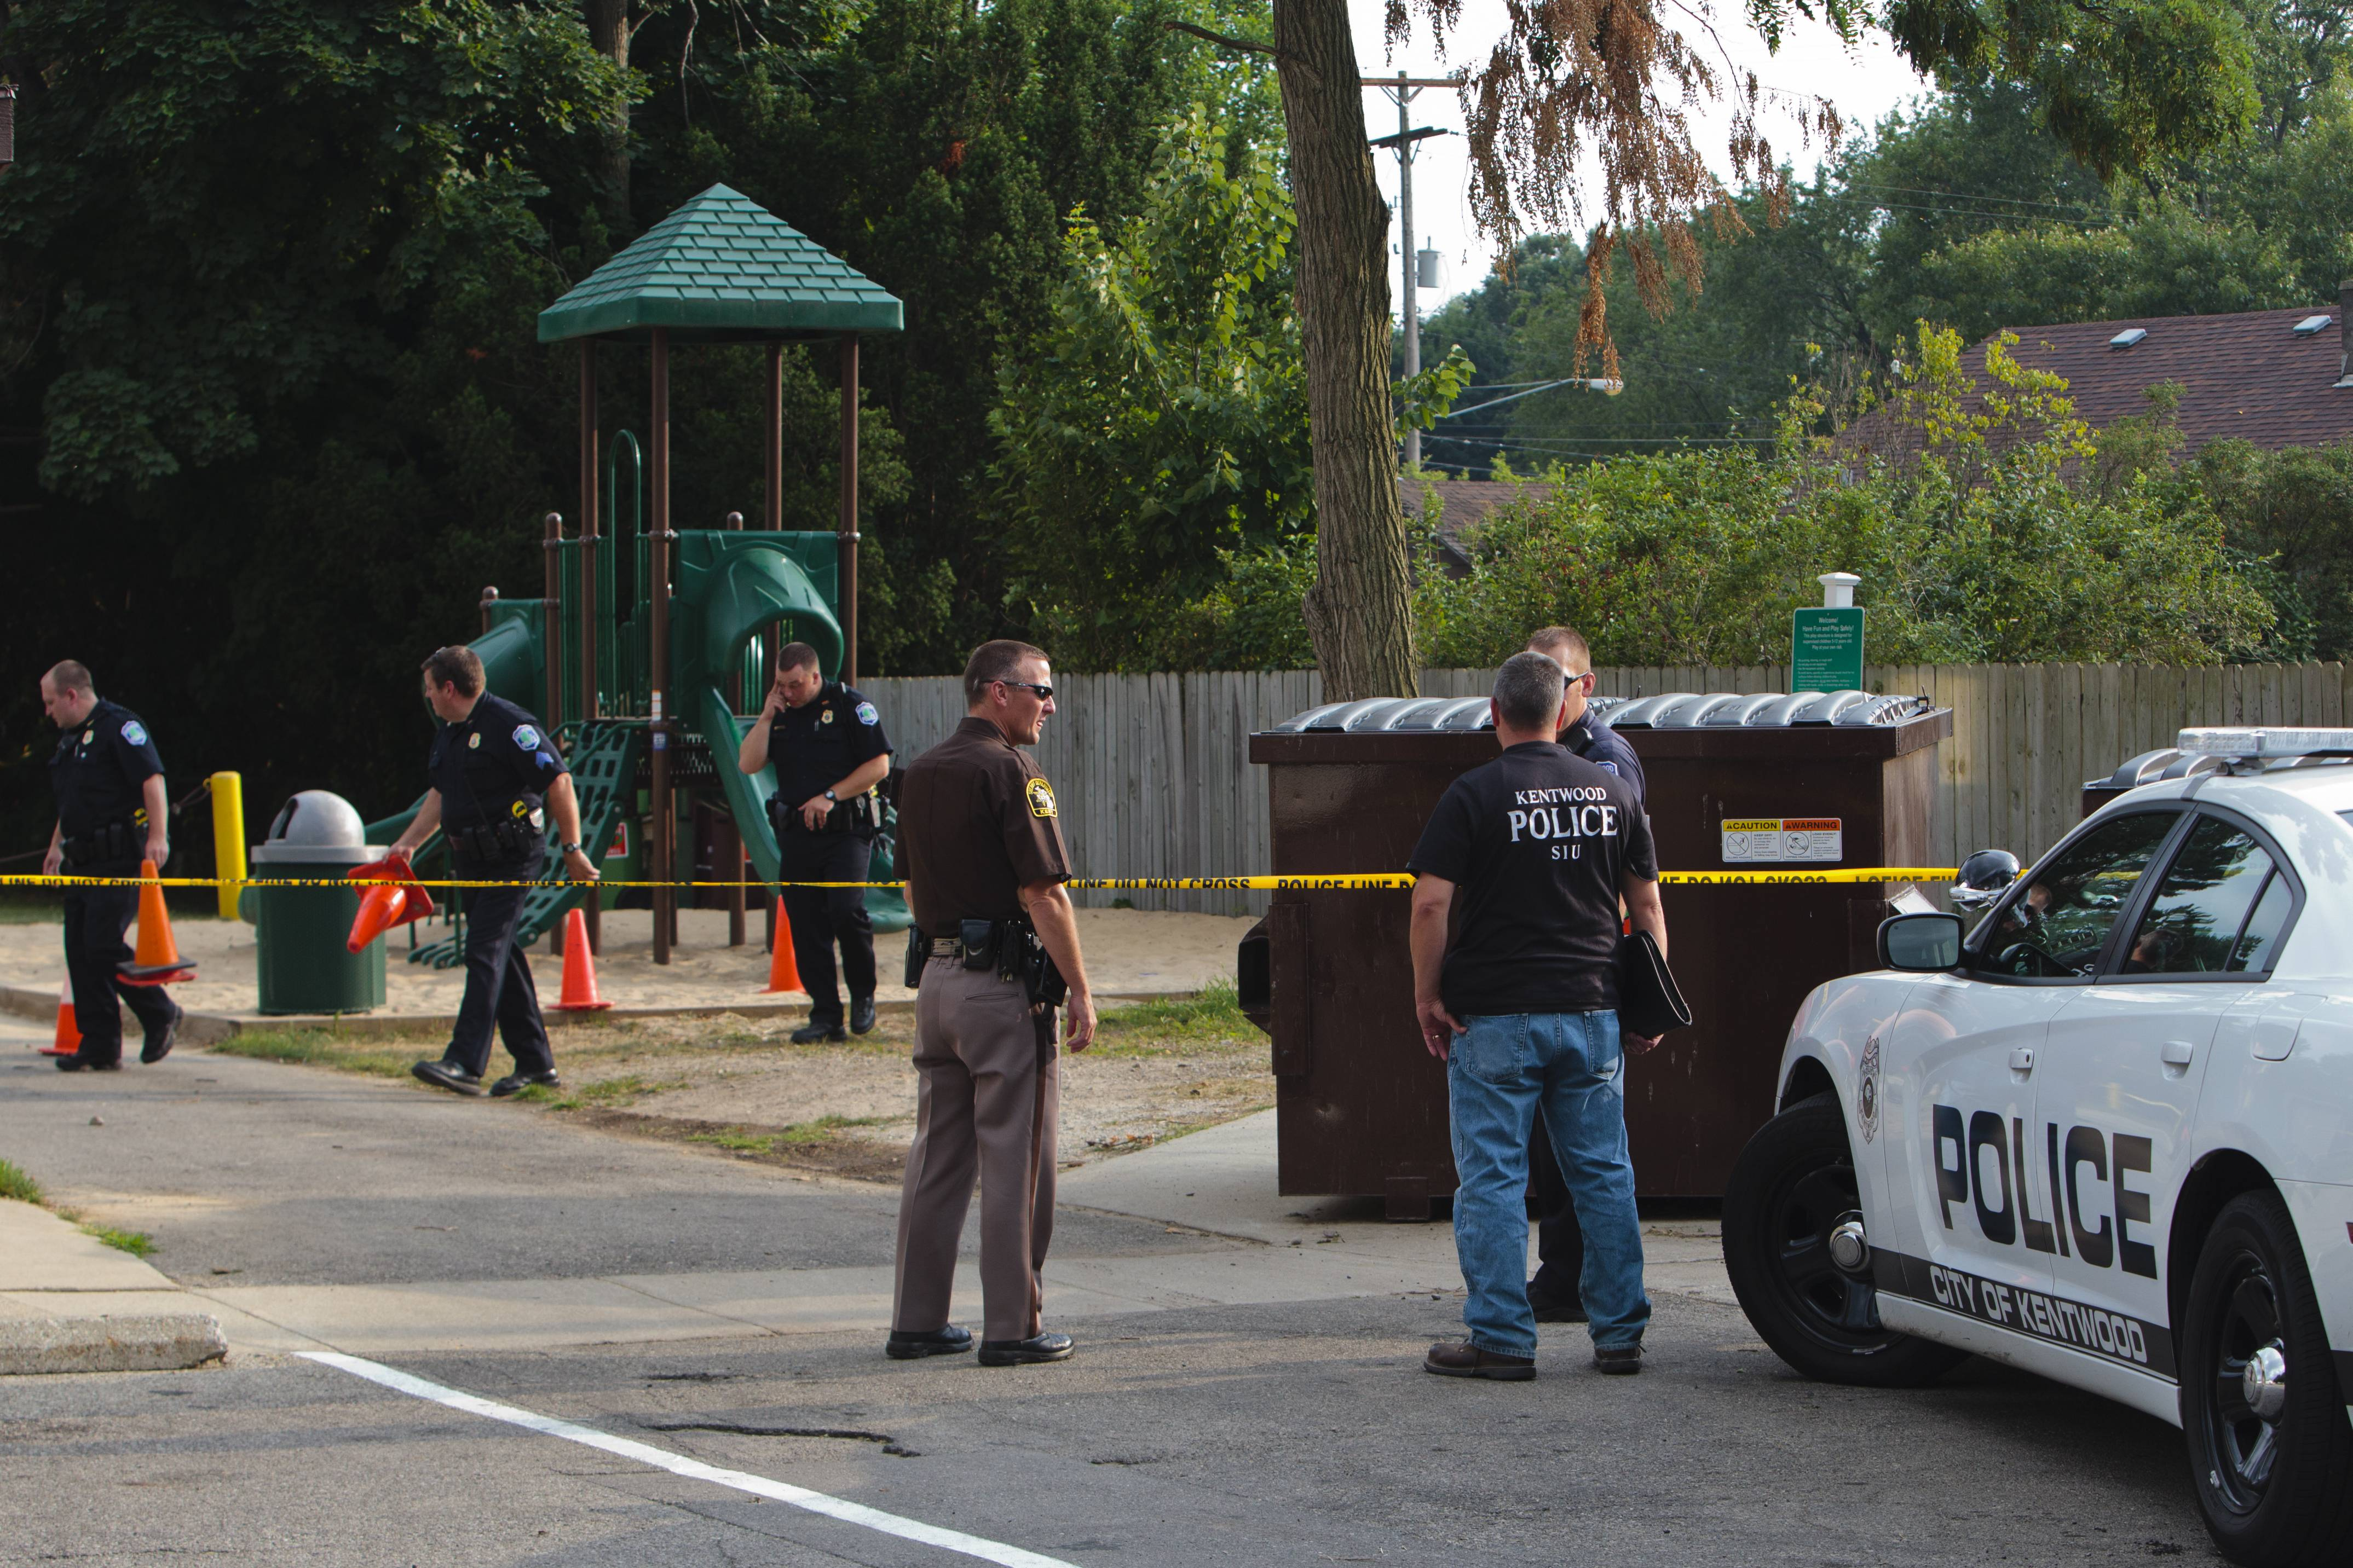 Kentwood police investigate a stabbing that occurred in a playground in Pinebrook Village, in Kentwood, Mich., on Aug. 4, 2014.